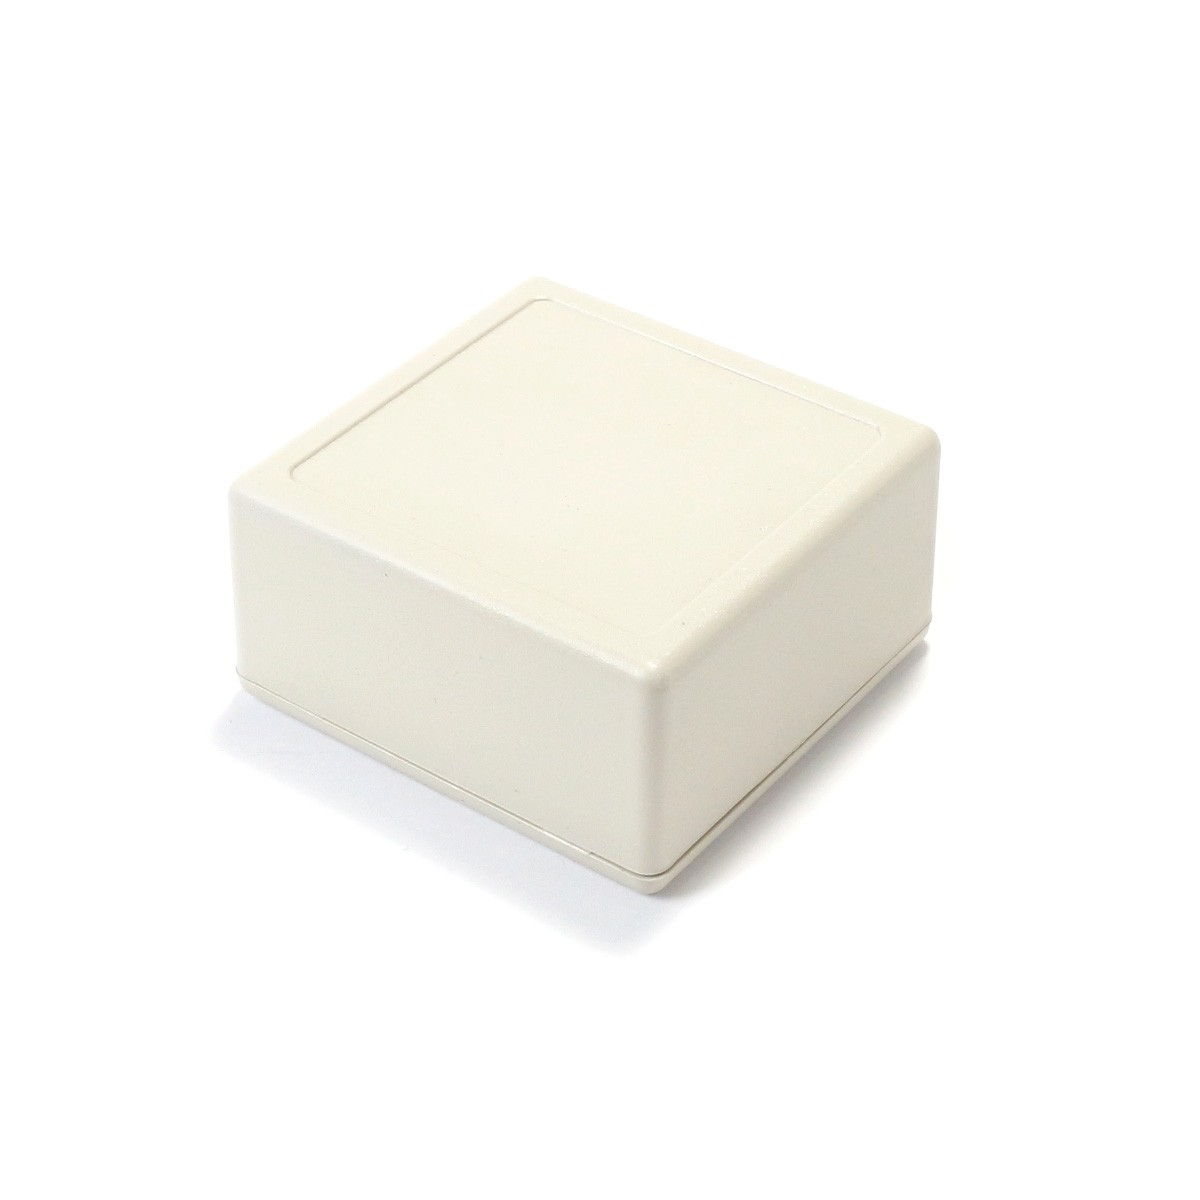 Plastic Case for Electronic Components 58x56x28mm